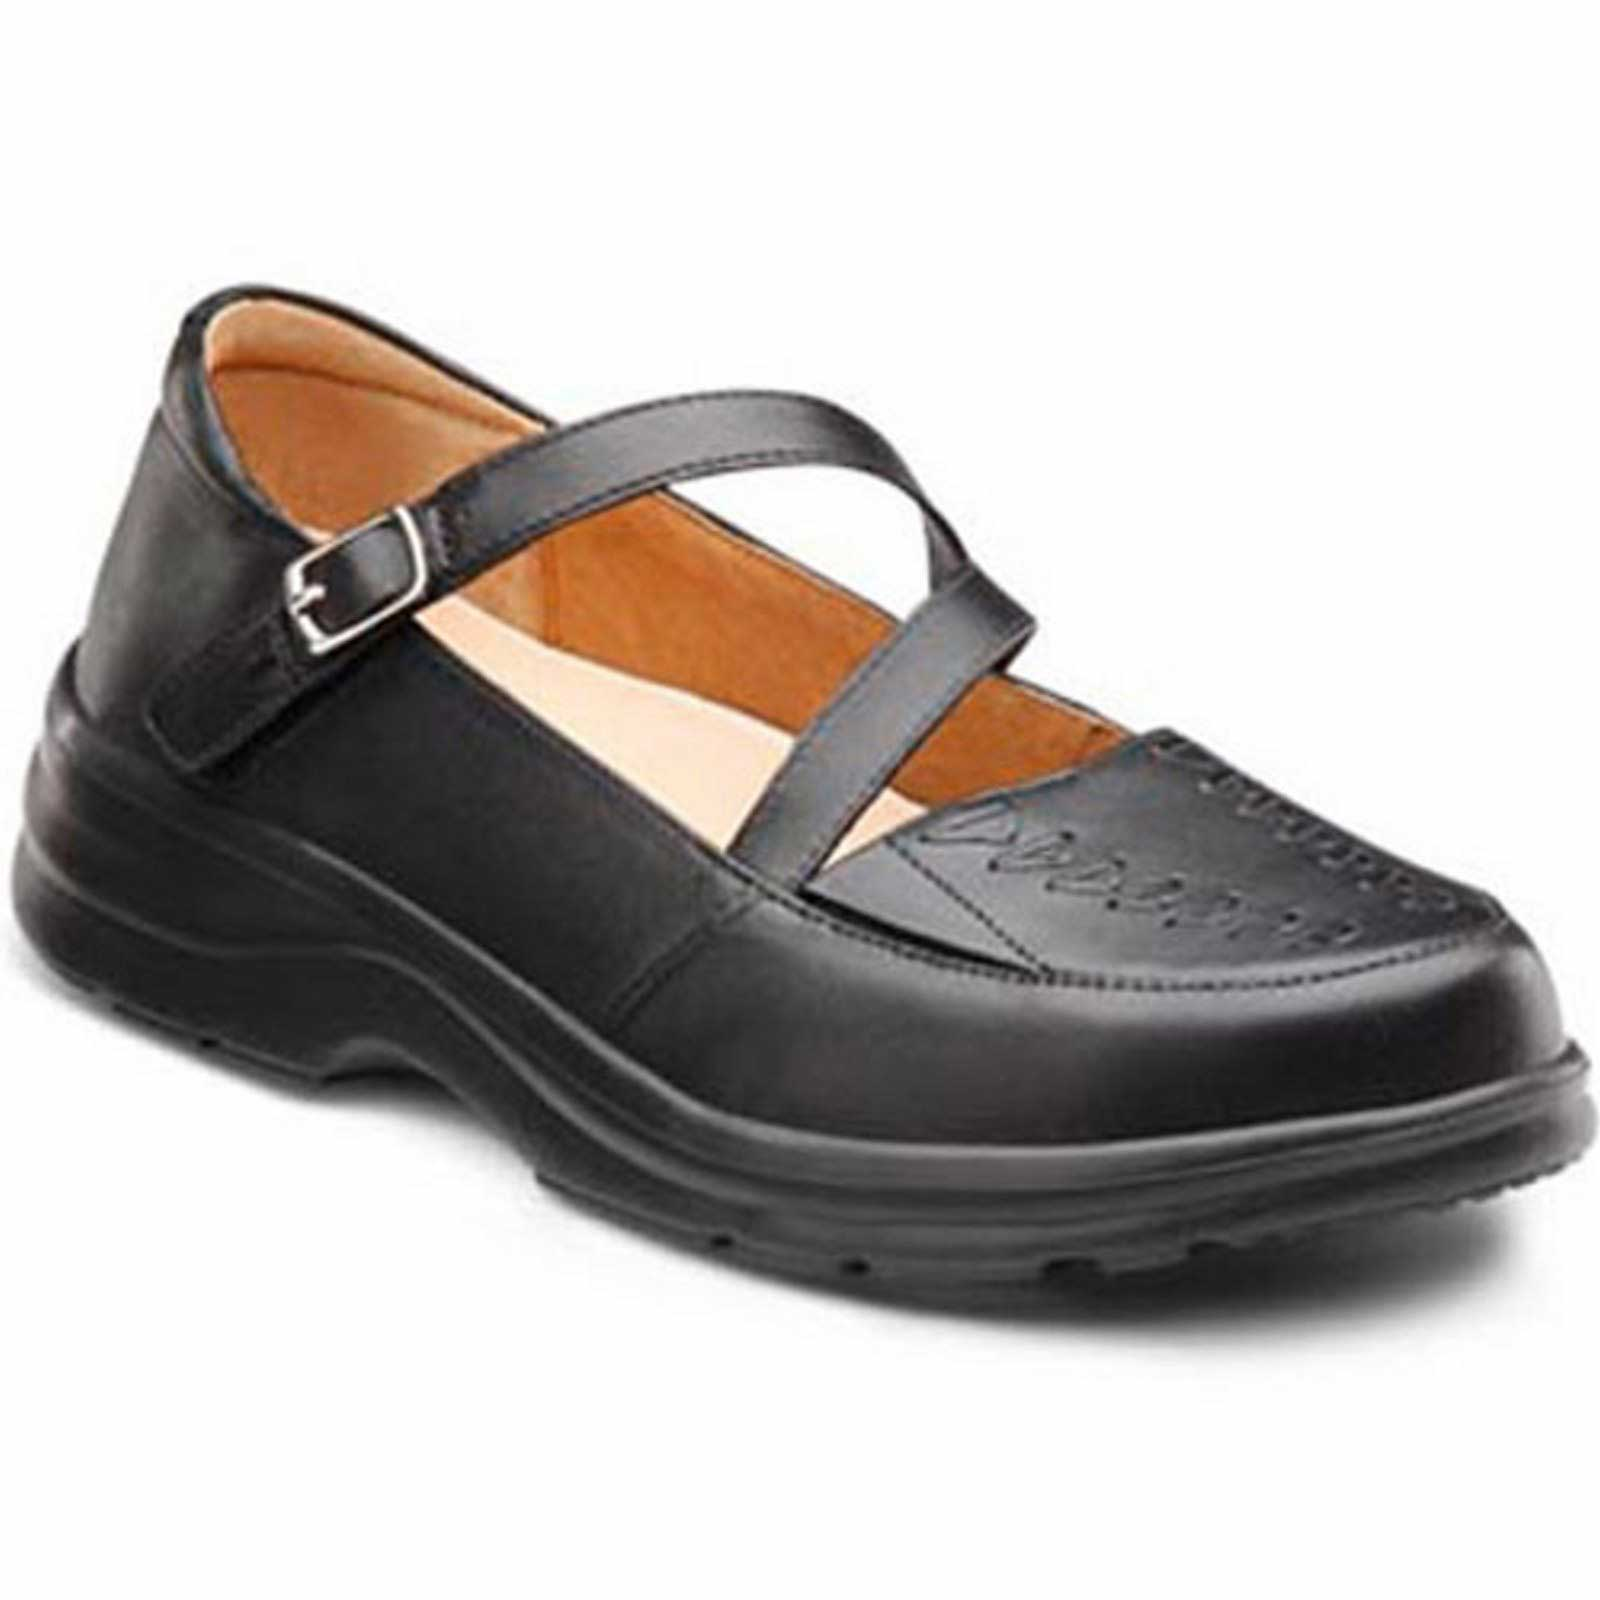 Dr Comfort Shoes - Betsy - Women's Therapeutic Diabetic Shoe with Gel Plus Inserts - Casual, Dress - Narrow (AA) - Extra Depth - at Sears.com